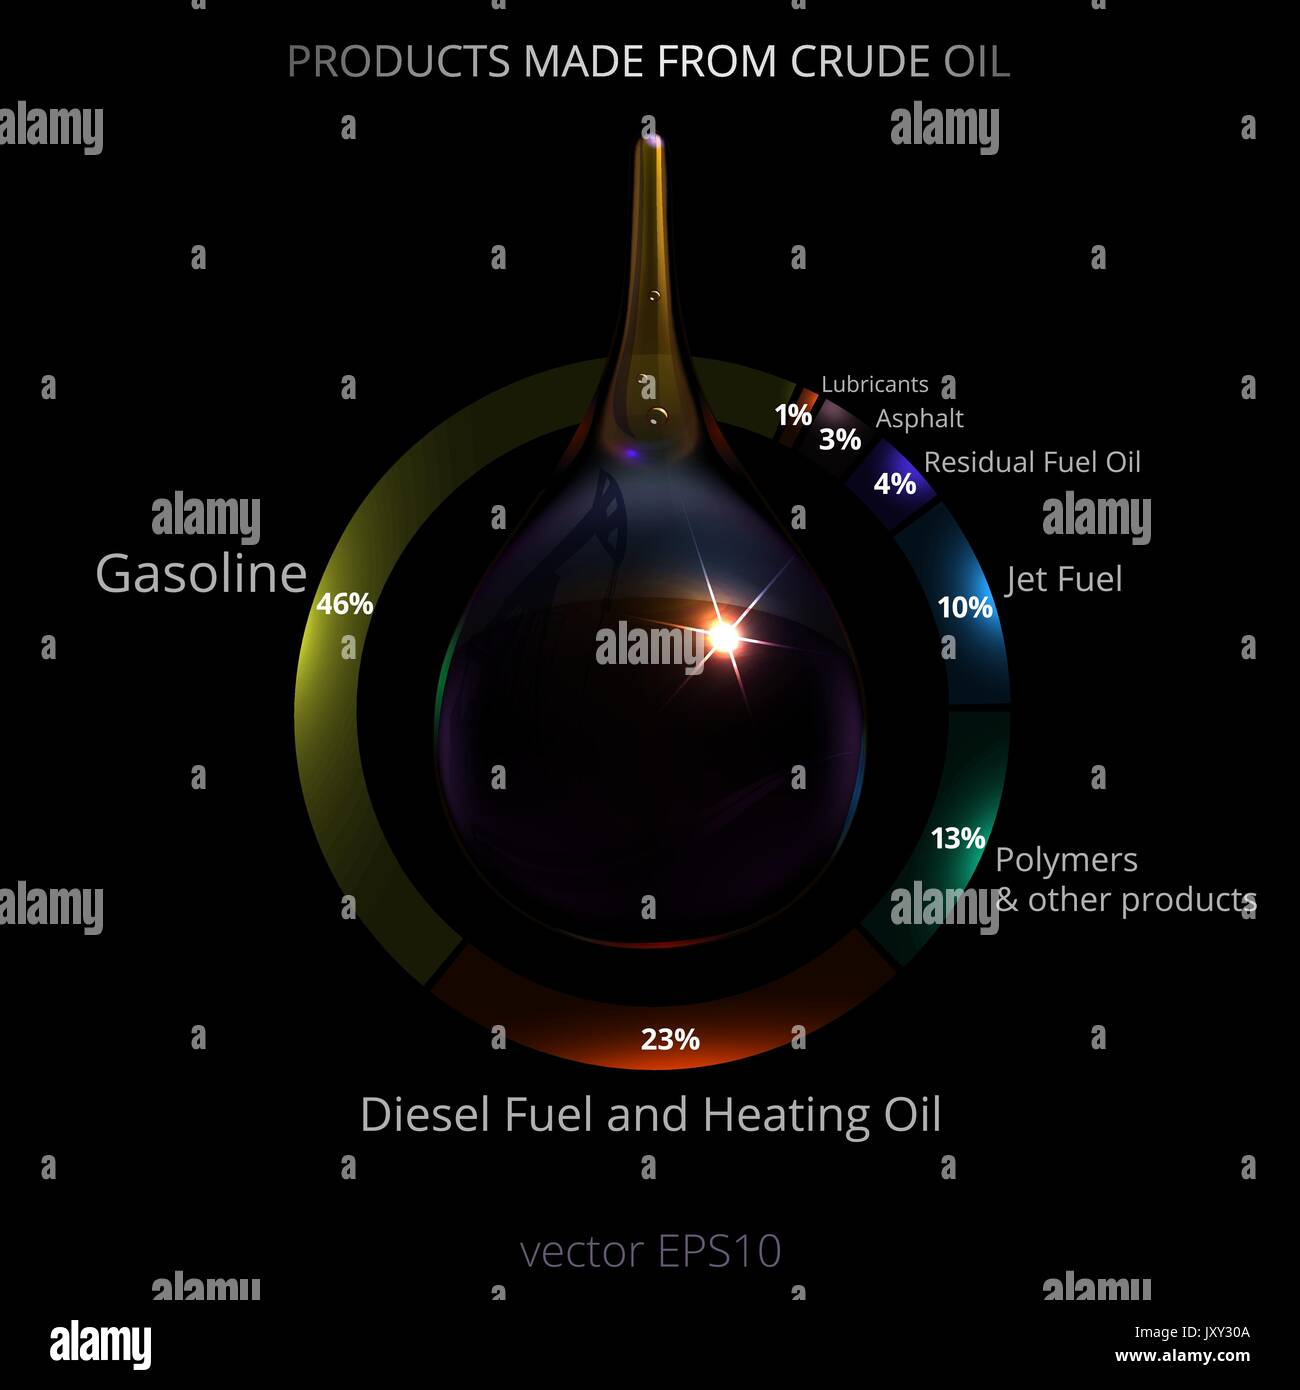 Oil industry infographic. 3d realistic drop of petroleum in a pie chart of products made from Black Gold. Percentage of gasoline, diesel, jet fuel etc - Stock Vector